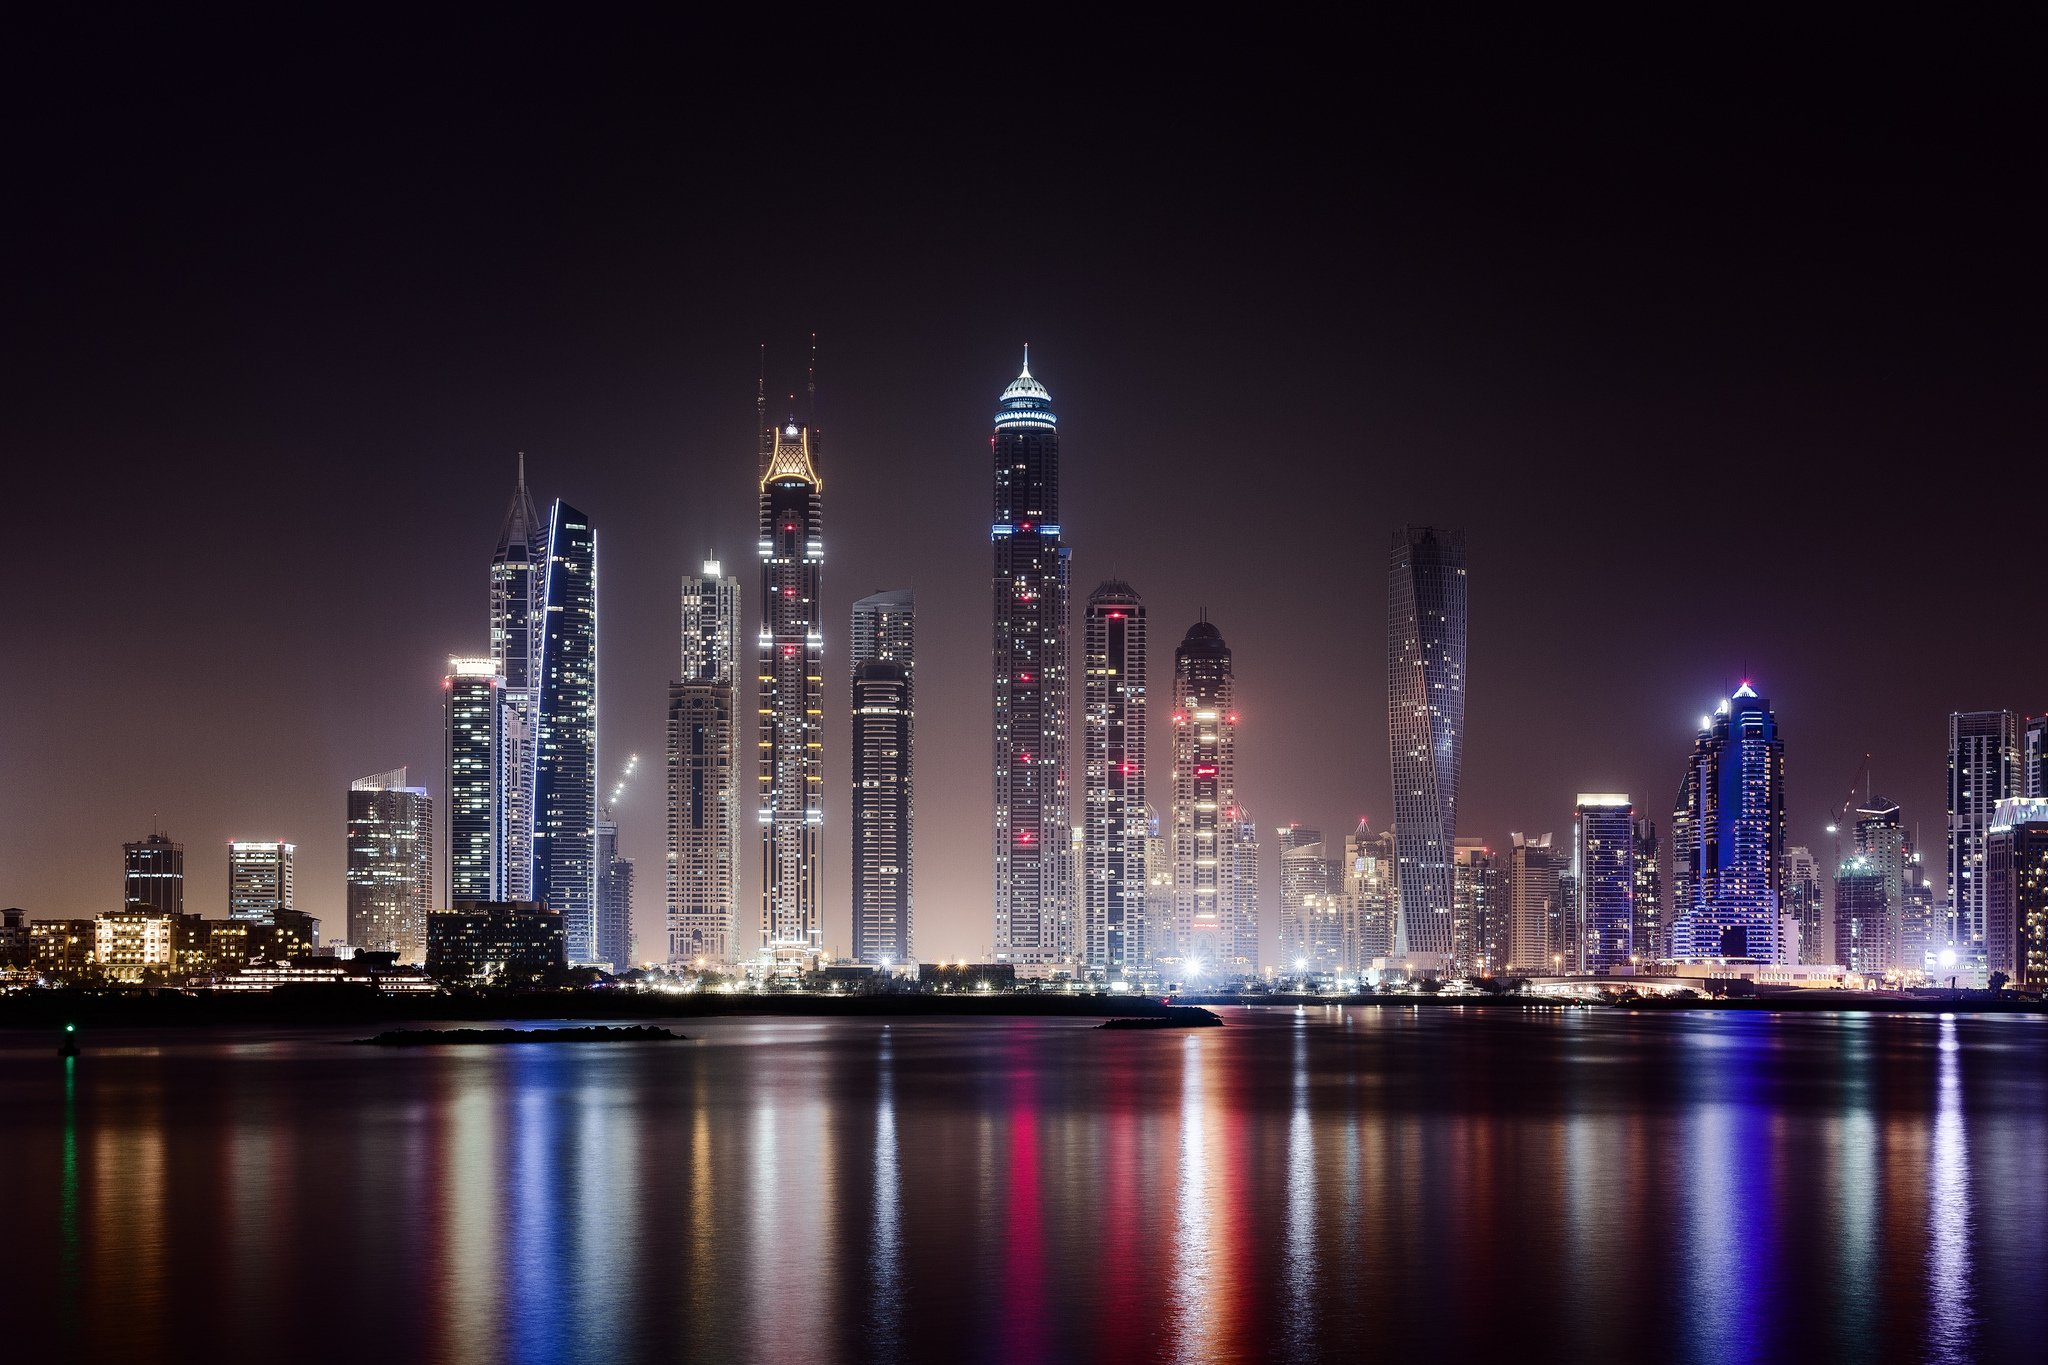 city Dubai city night wallpaper hd skyscraper lights desktop hd 2048x1365